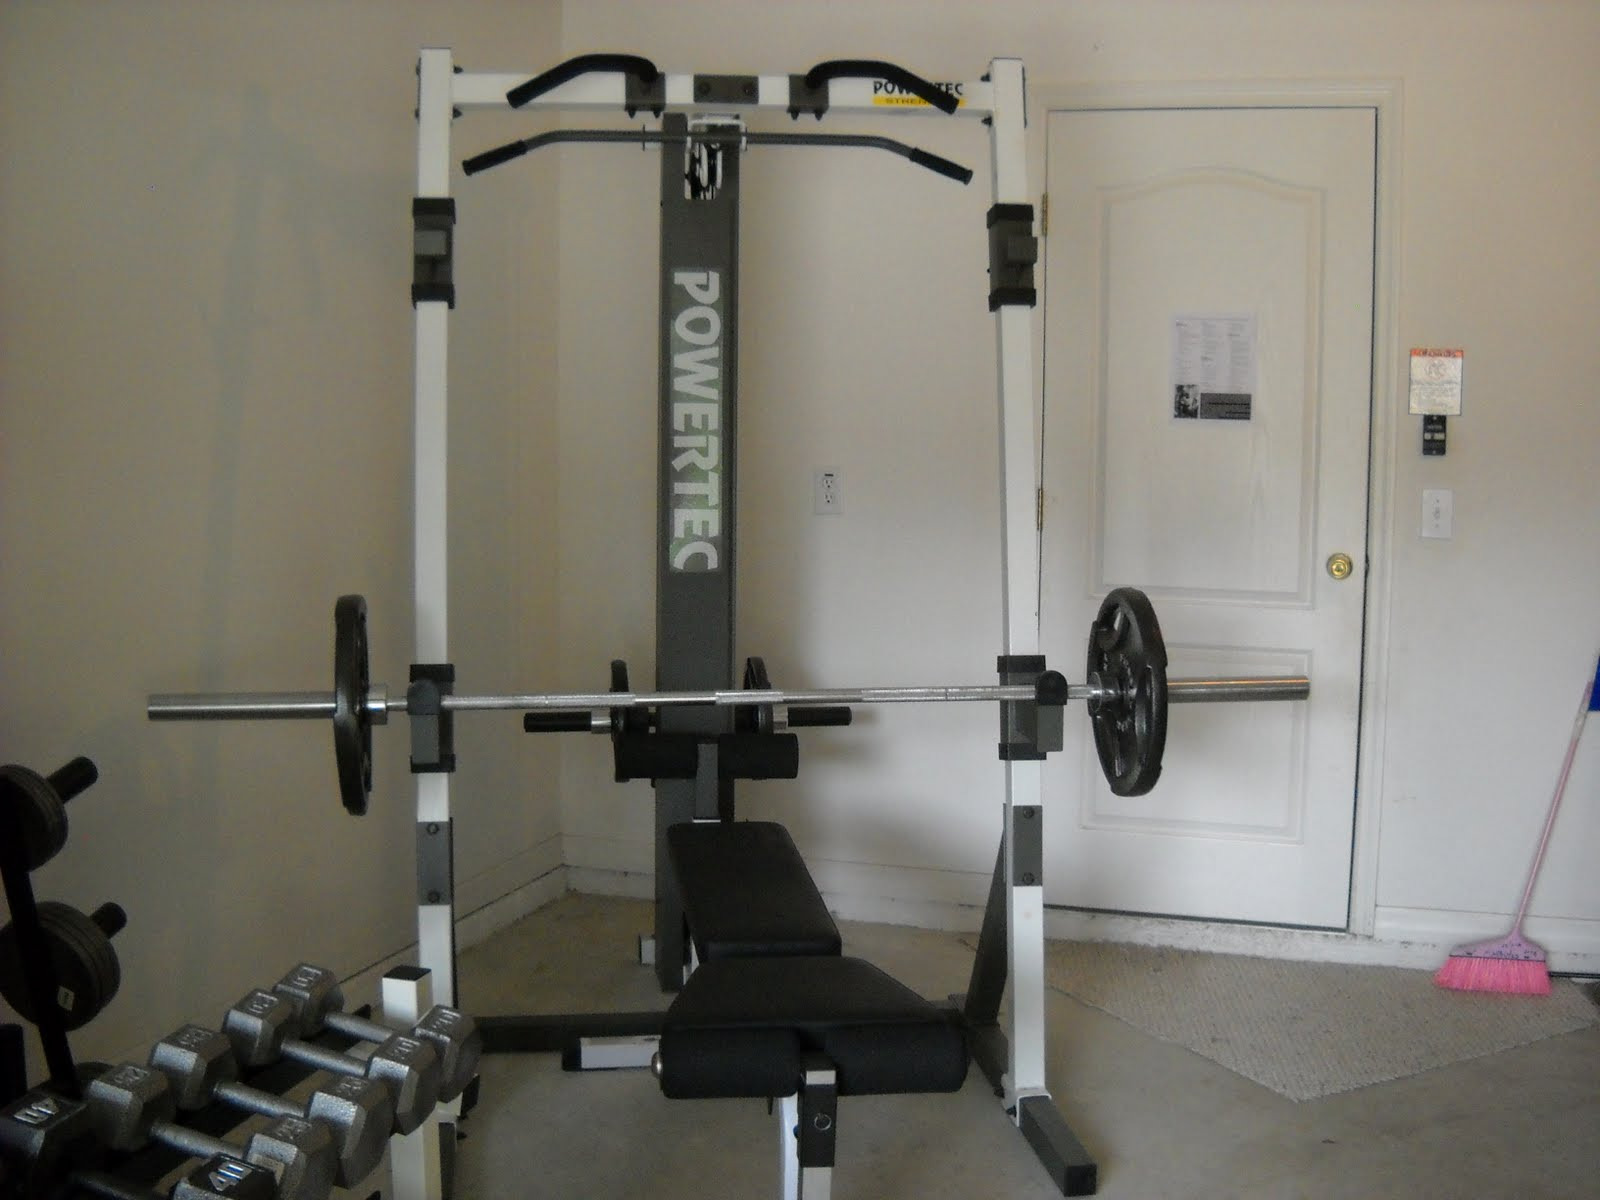 Gym Equipment For Sale - Home gym equipment for sale